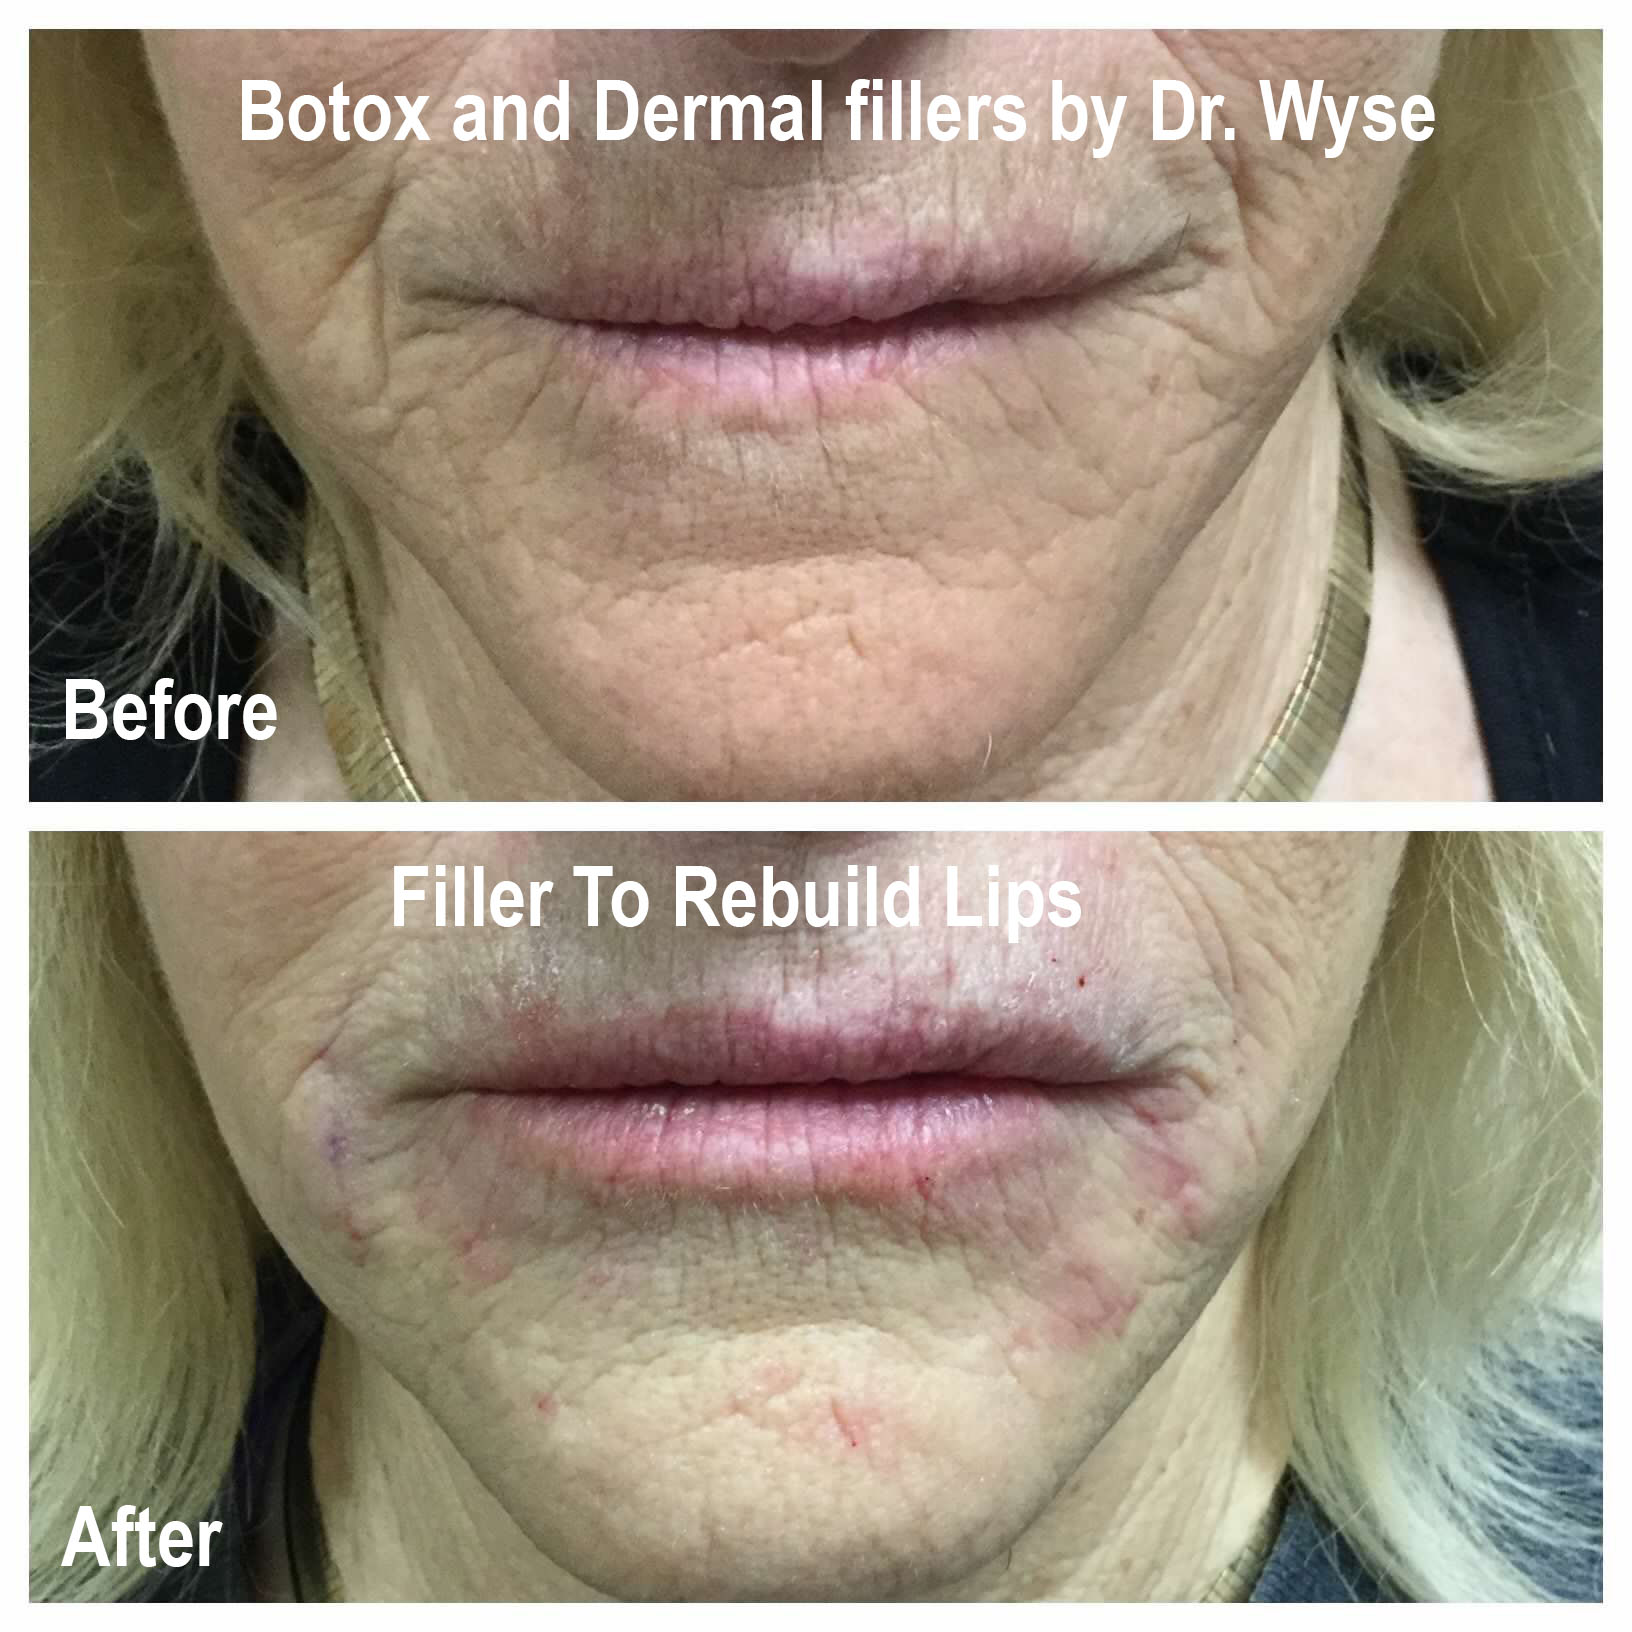 Fillers to rebuild lips